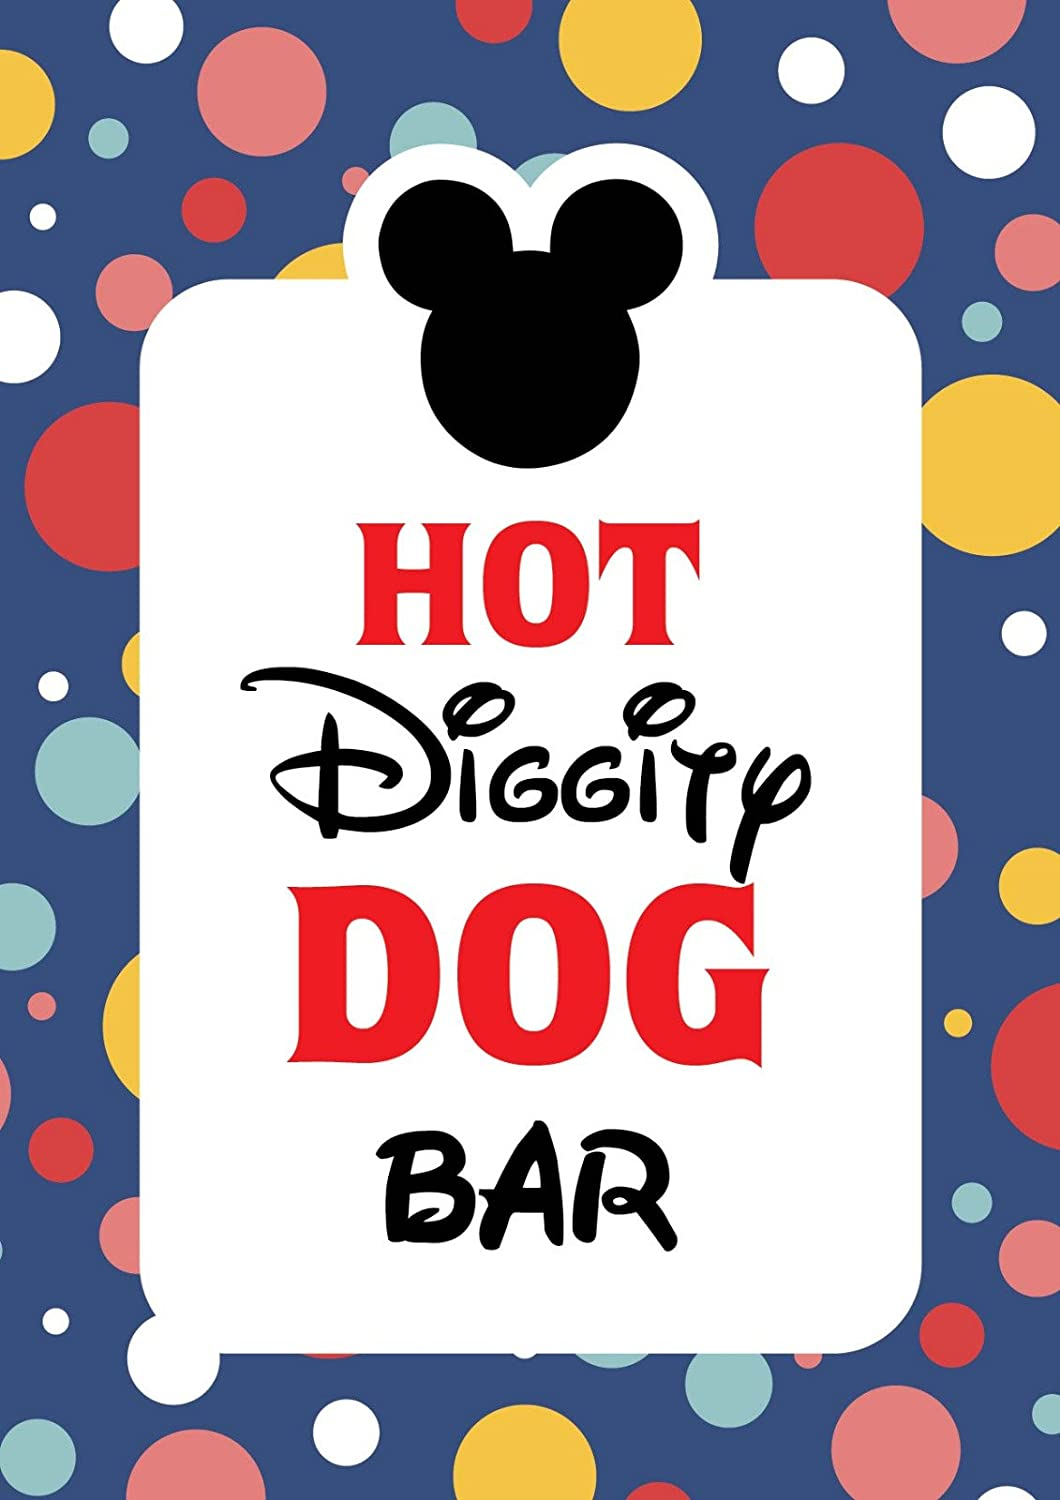 graphic relating to Mickey Printable identified as Mickey Mouse Celebration products Mickey Mouse Clubhouse motivated Doorway Indicator  Sizzling Diggity Canine Bar Bash Signal - 8 x 10 dimensions - Published inside Card Inventory